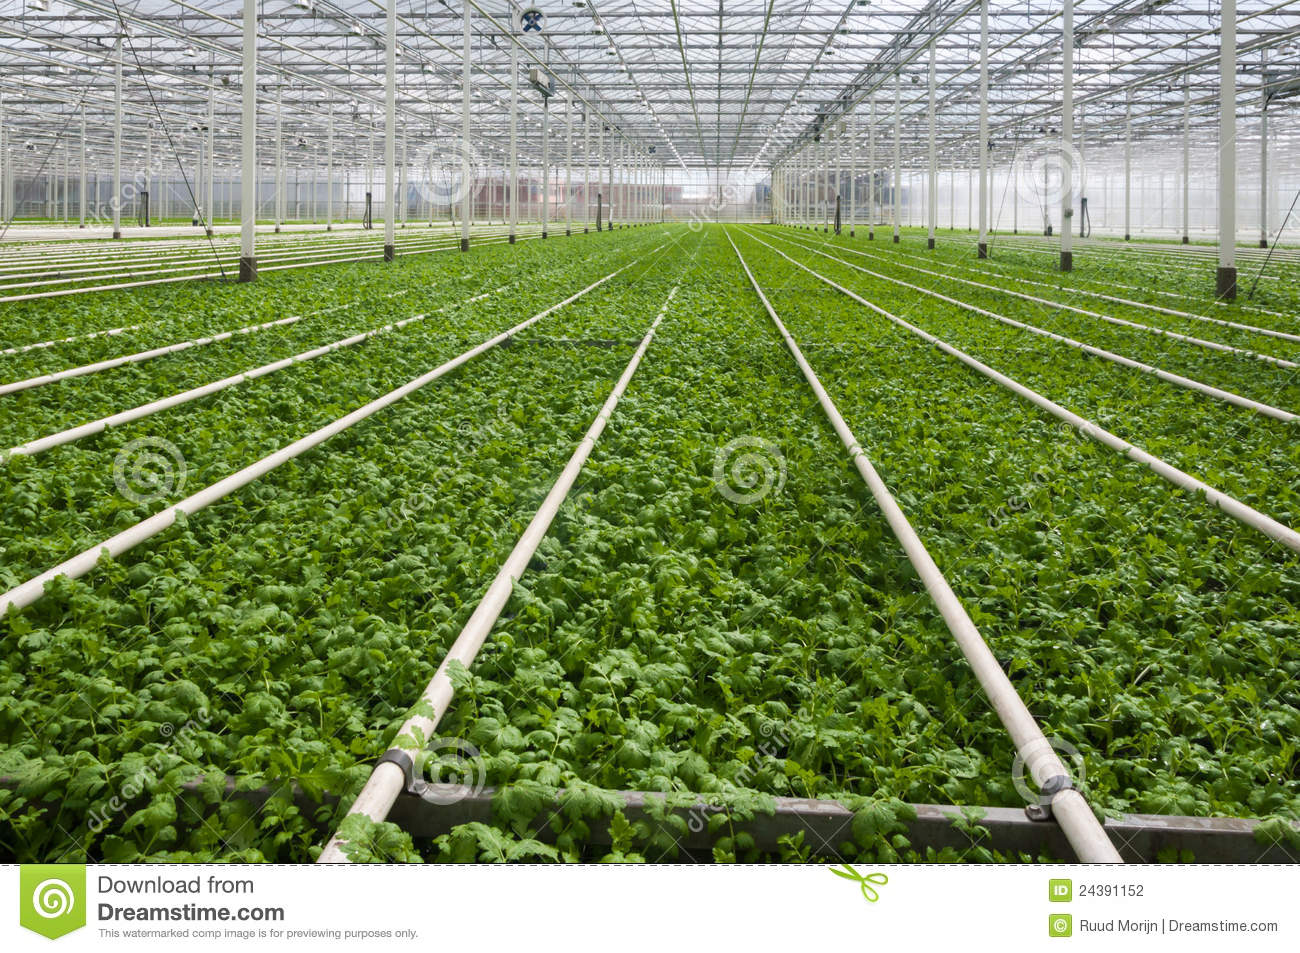 modern dutch greenhouse complex with small plants stock photo image 24391152. Black Bedroom Furniture Sets. Home Design Ideas